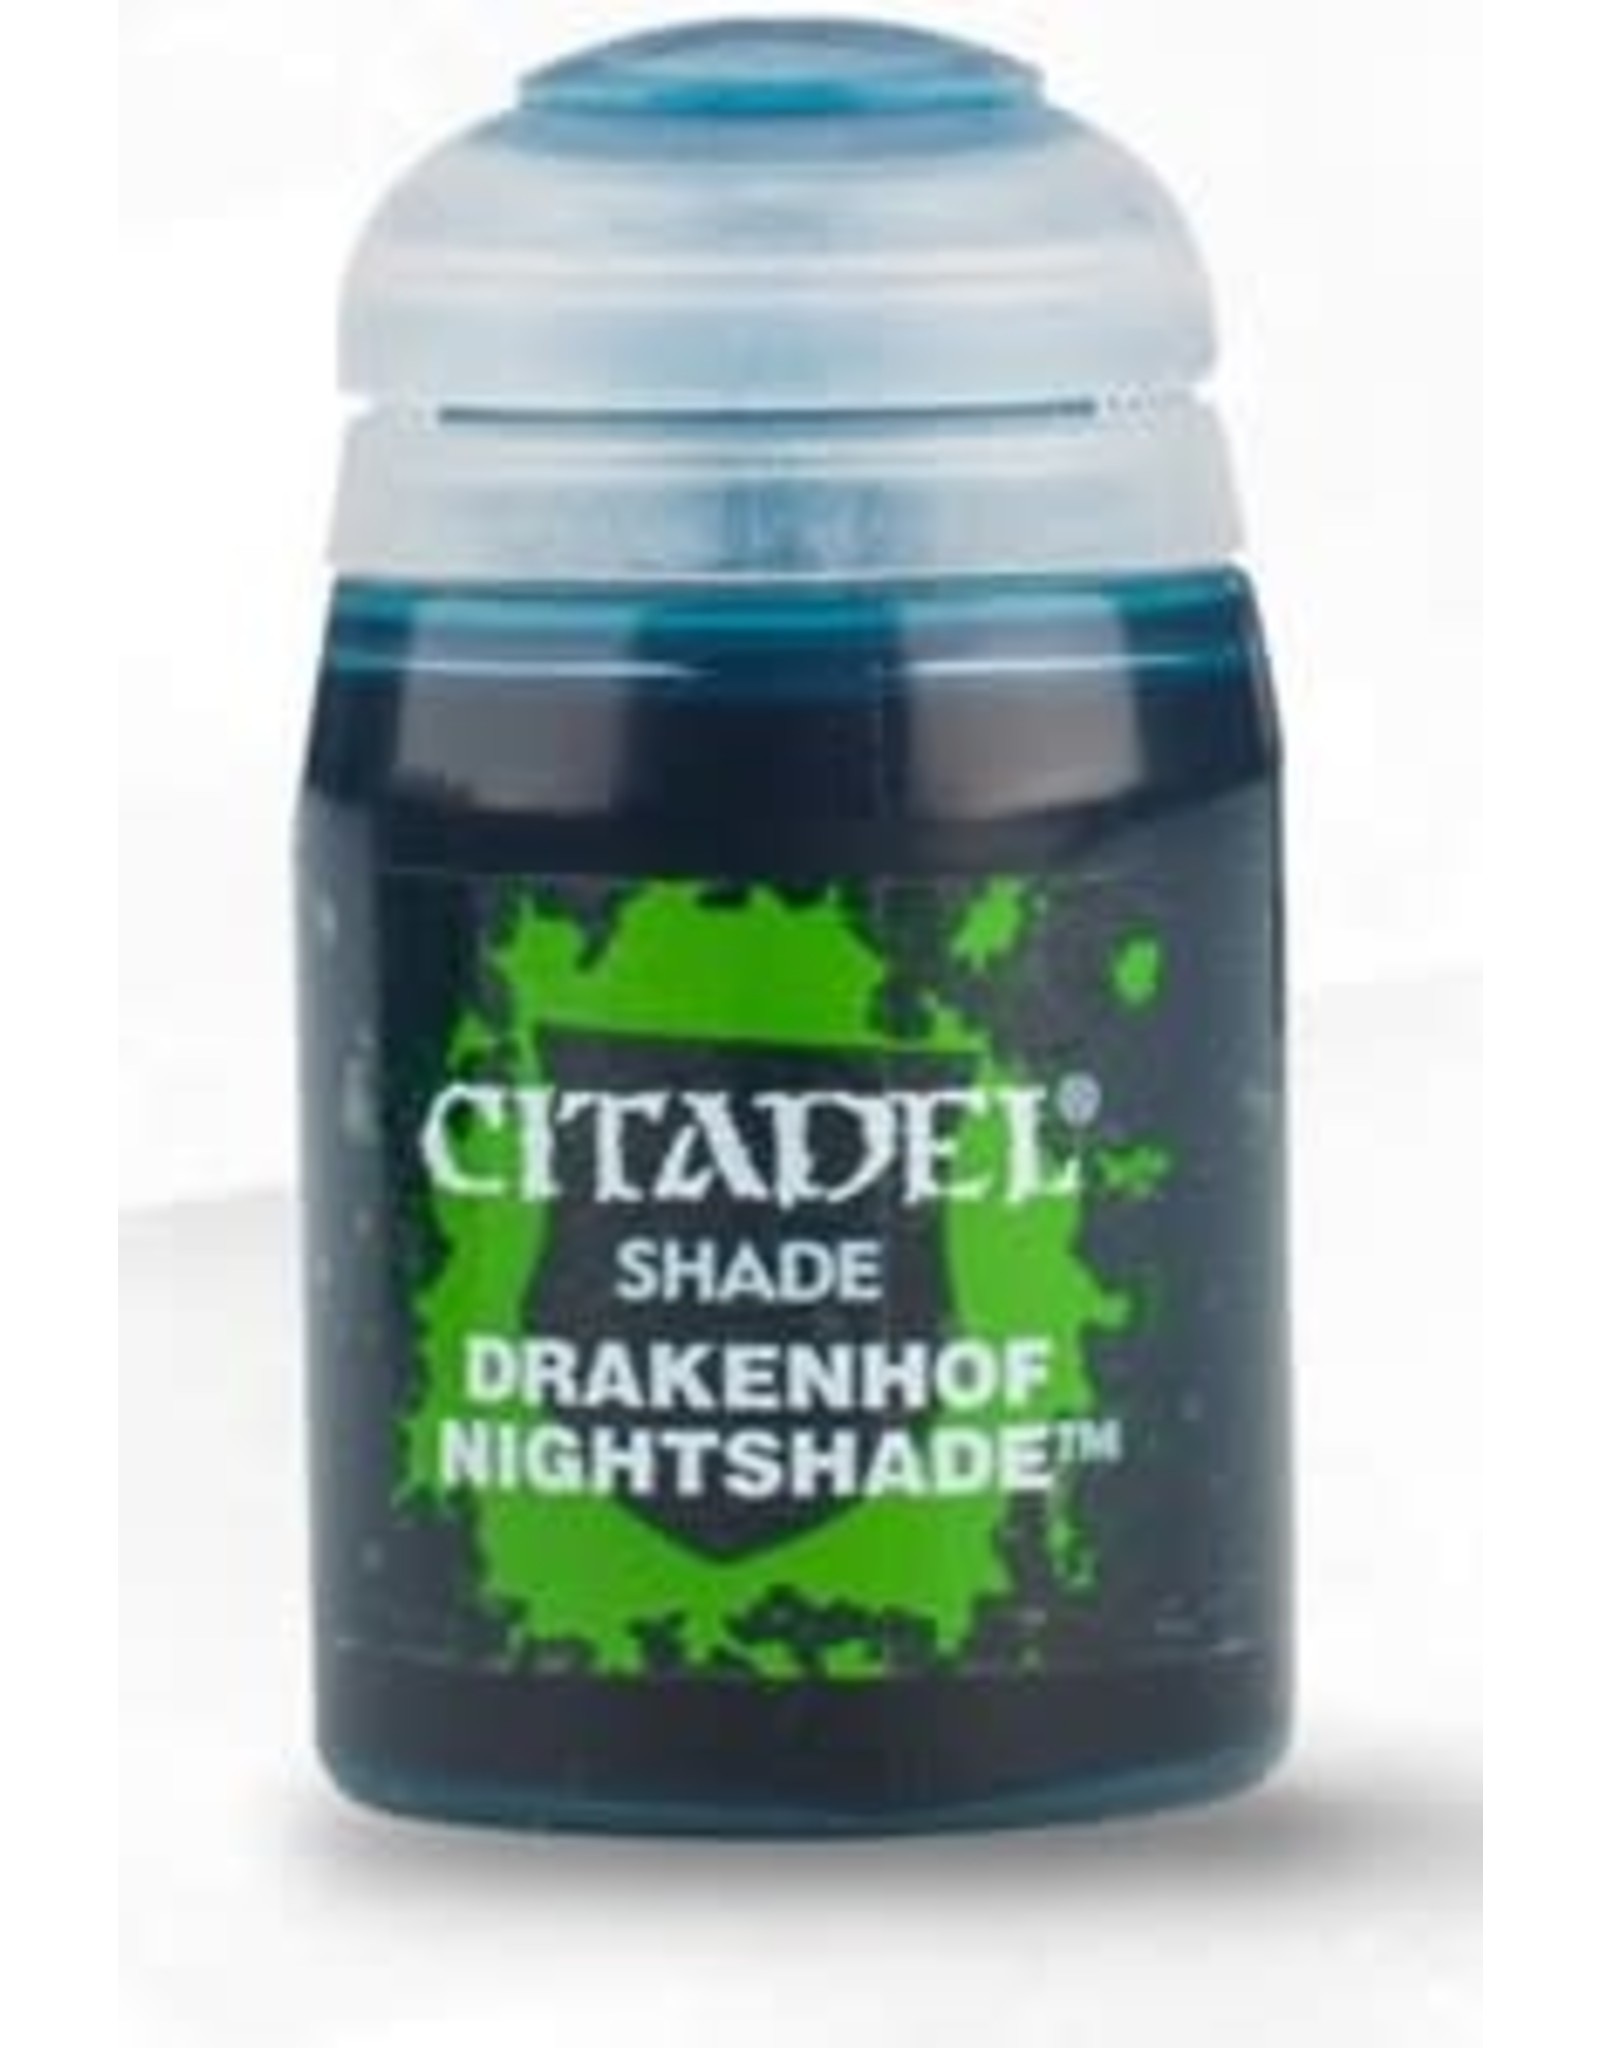 Games Workshop Citadel Paint: Drakenhof Nightshade 24ml